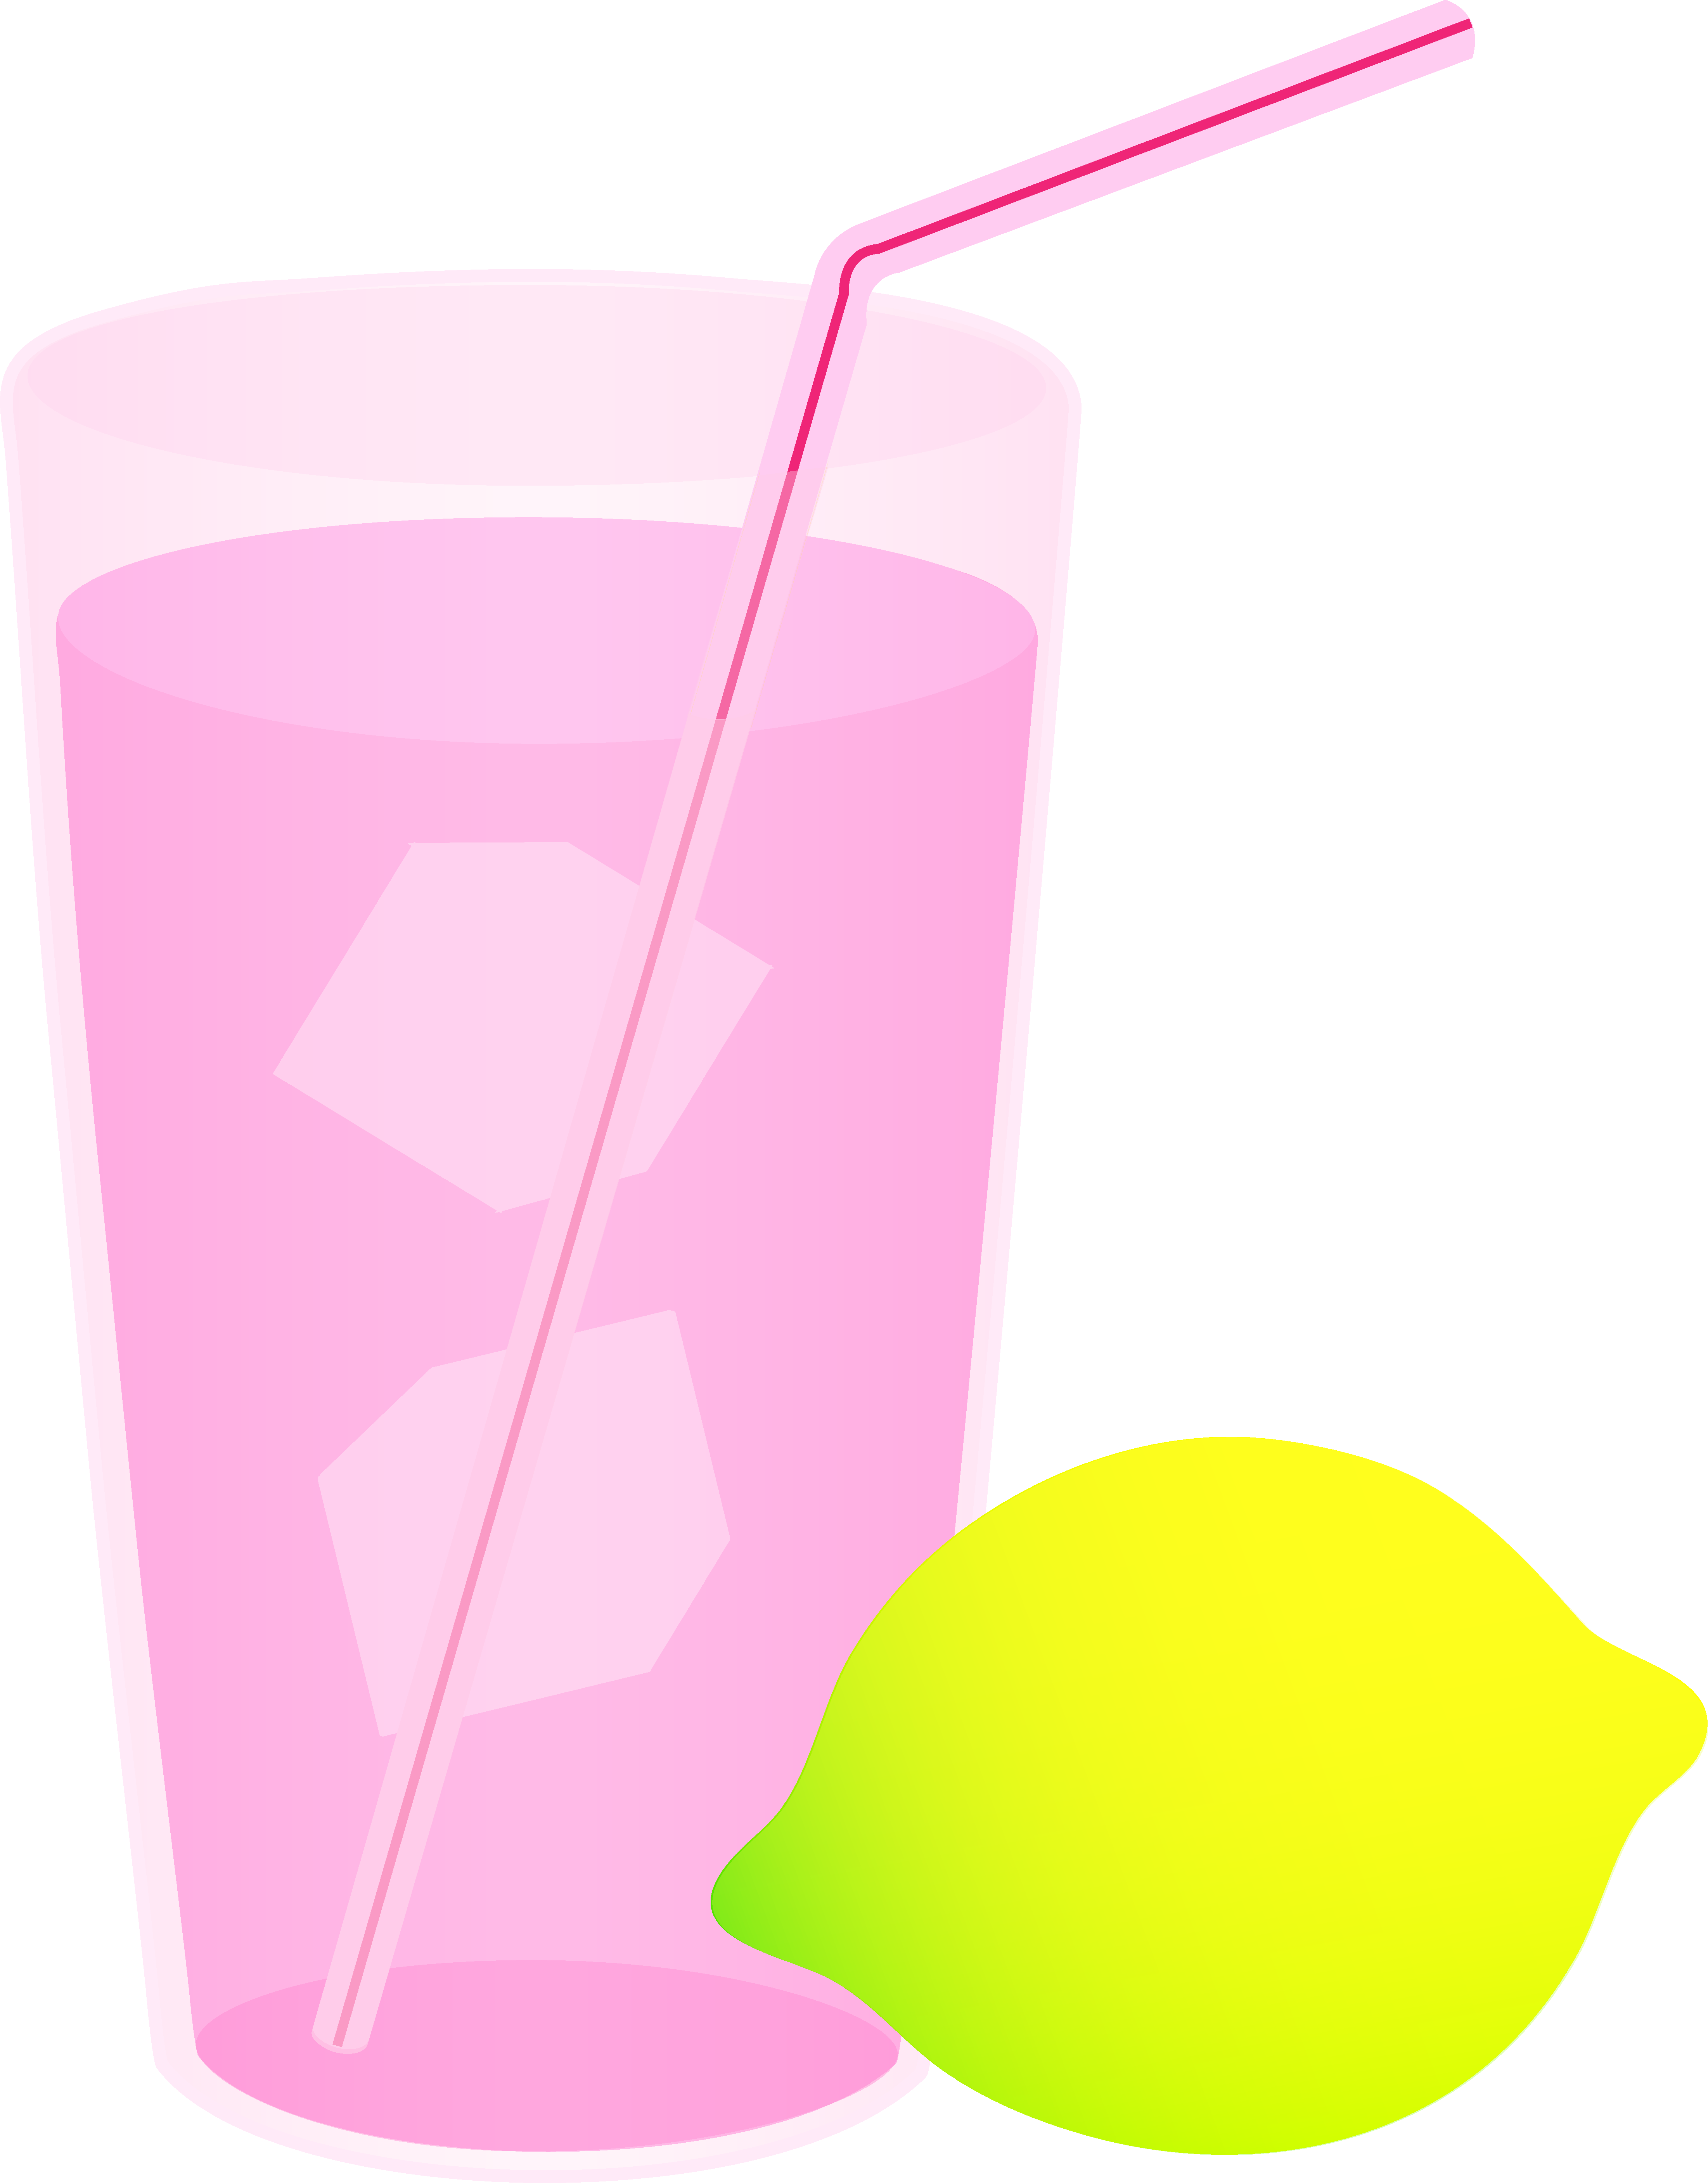 Lemons clipart lemonade. Glass of pink free